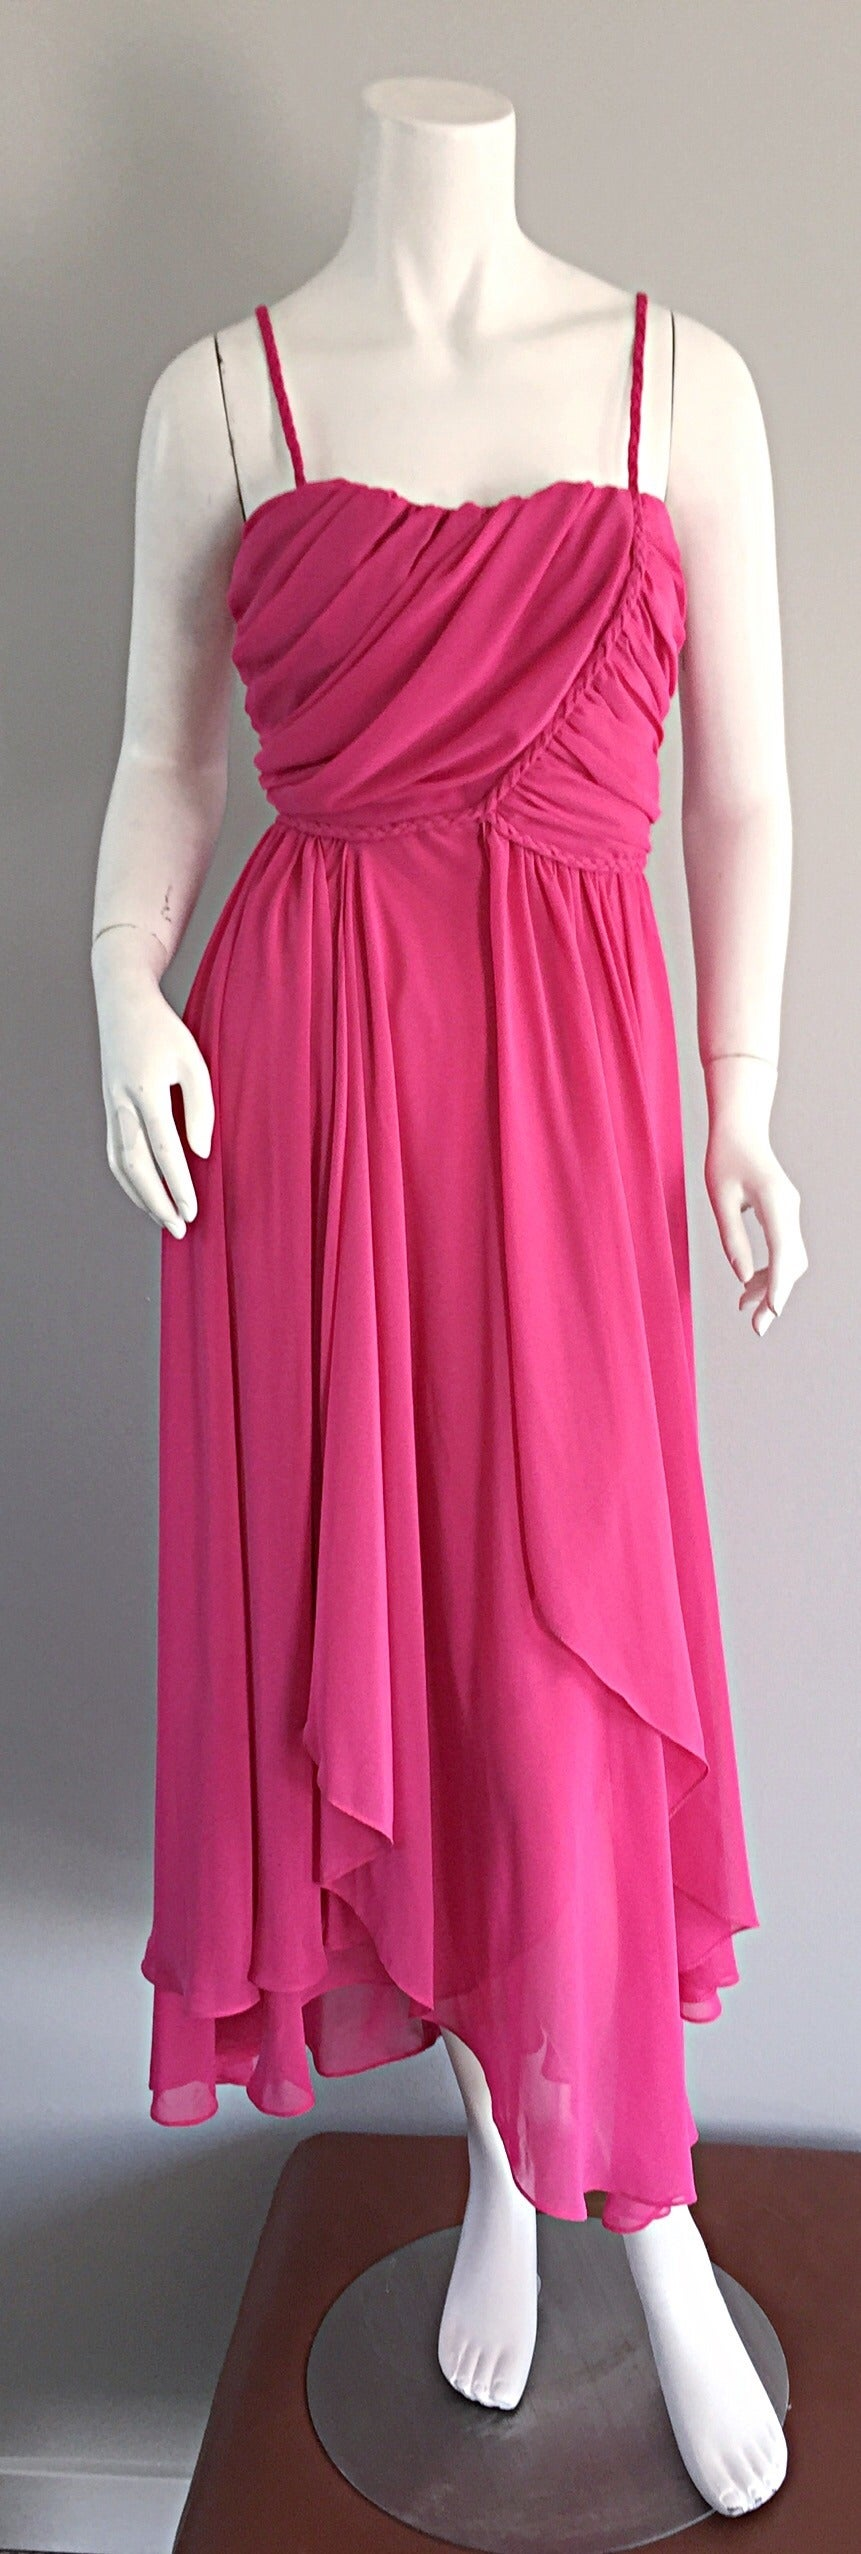 Gorgeous vintage Joy Stevens disco dress! Hot pink color, with an incredible amount of detail. Layers and layers of flowy pink asymmetrical panels. Flattering ruching at bust, with intricate braiding detail throughout, including braided shoulder